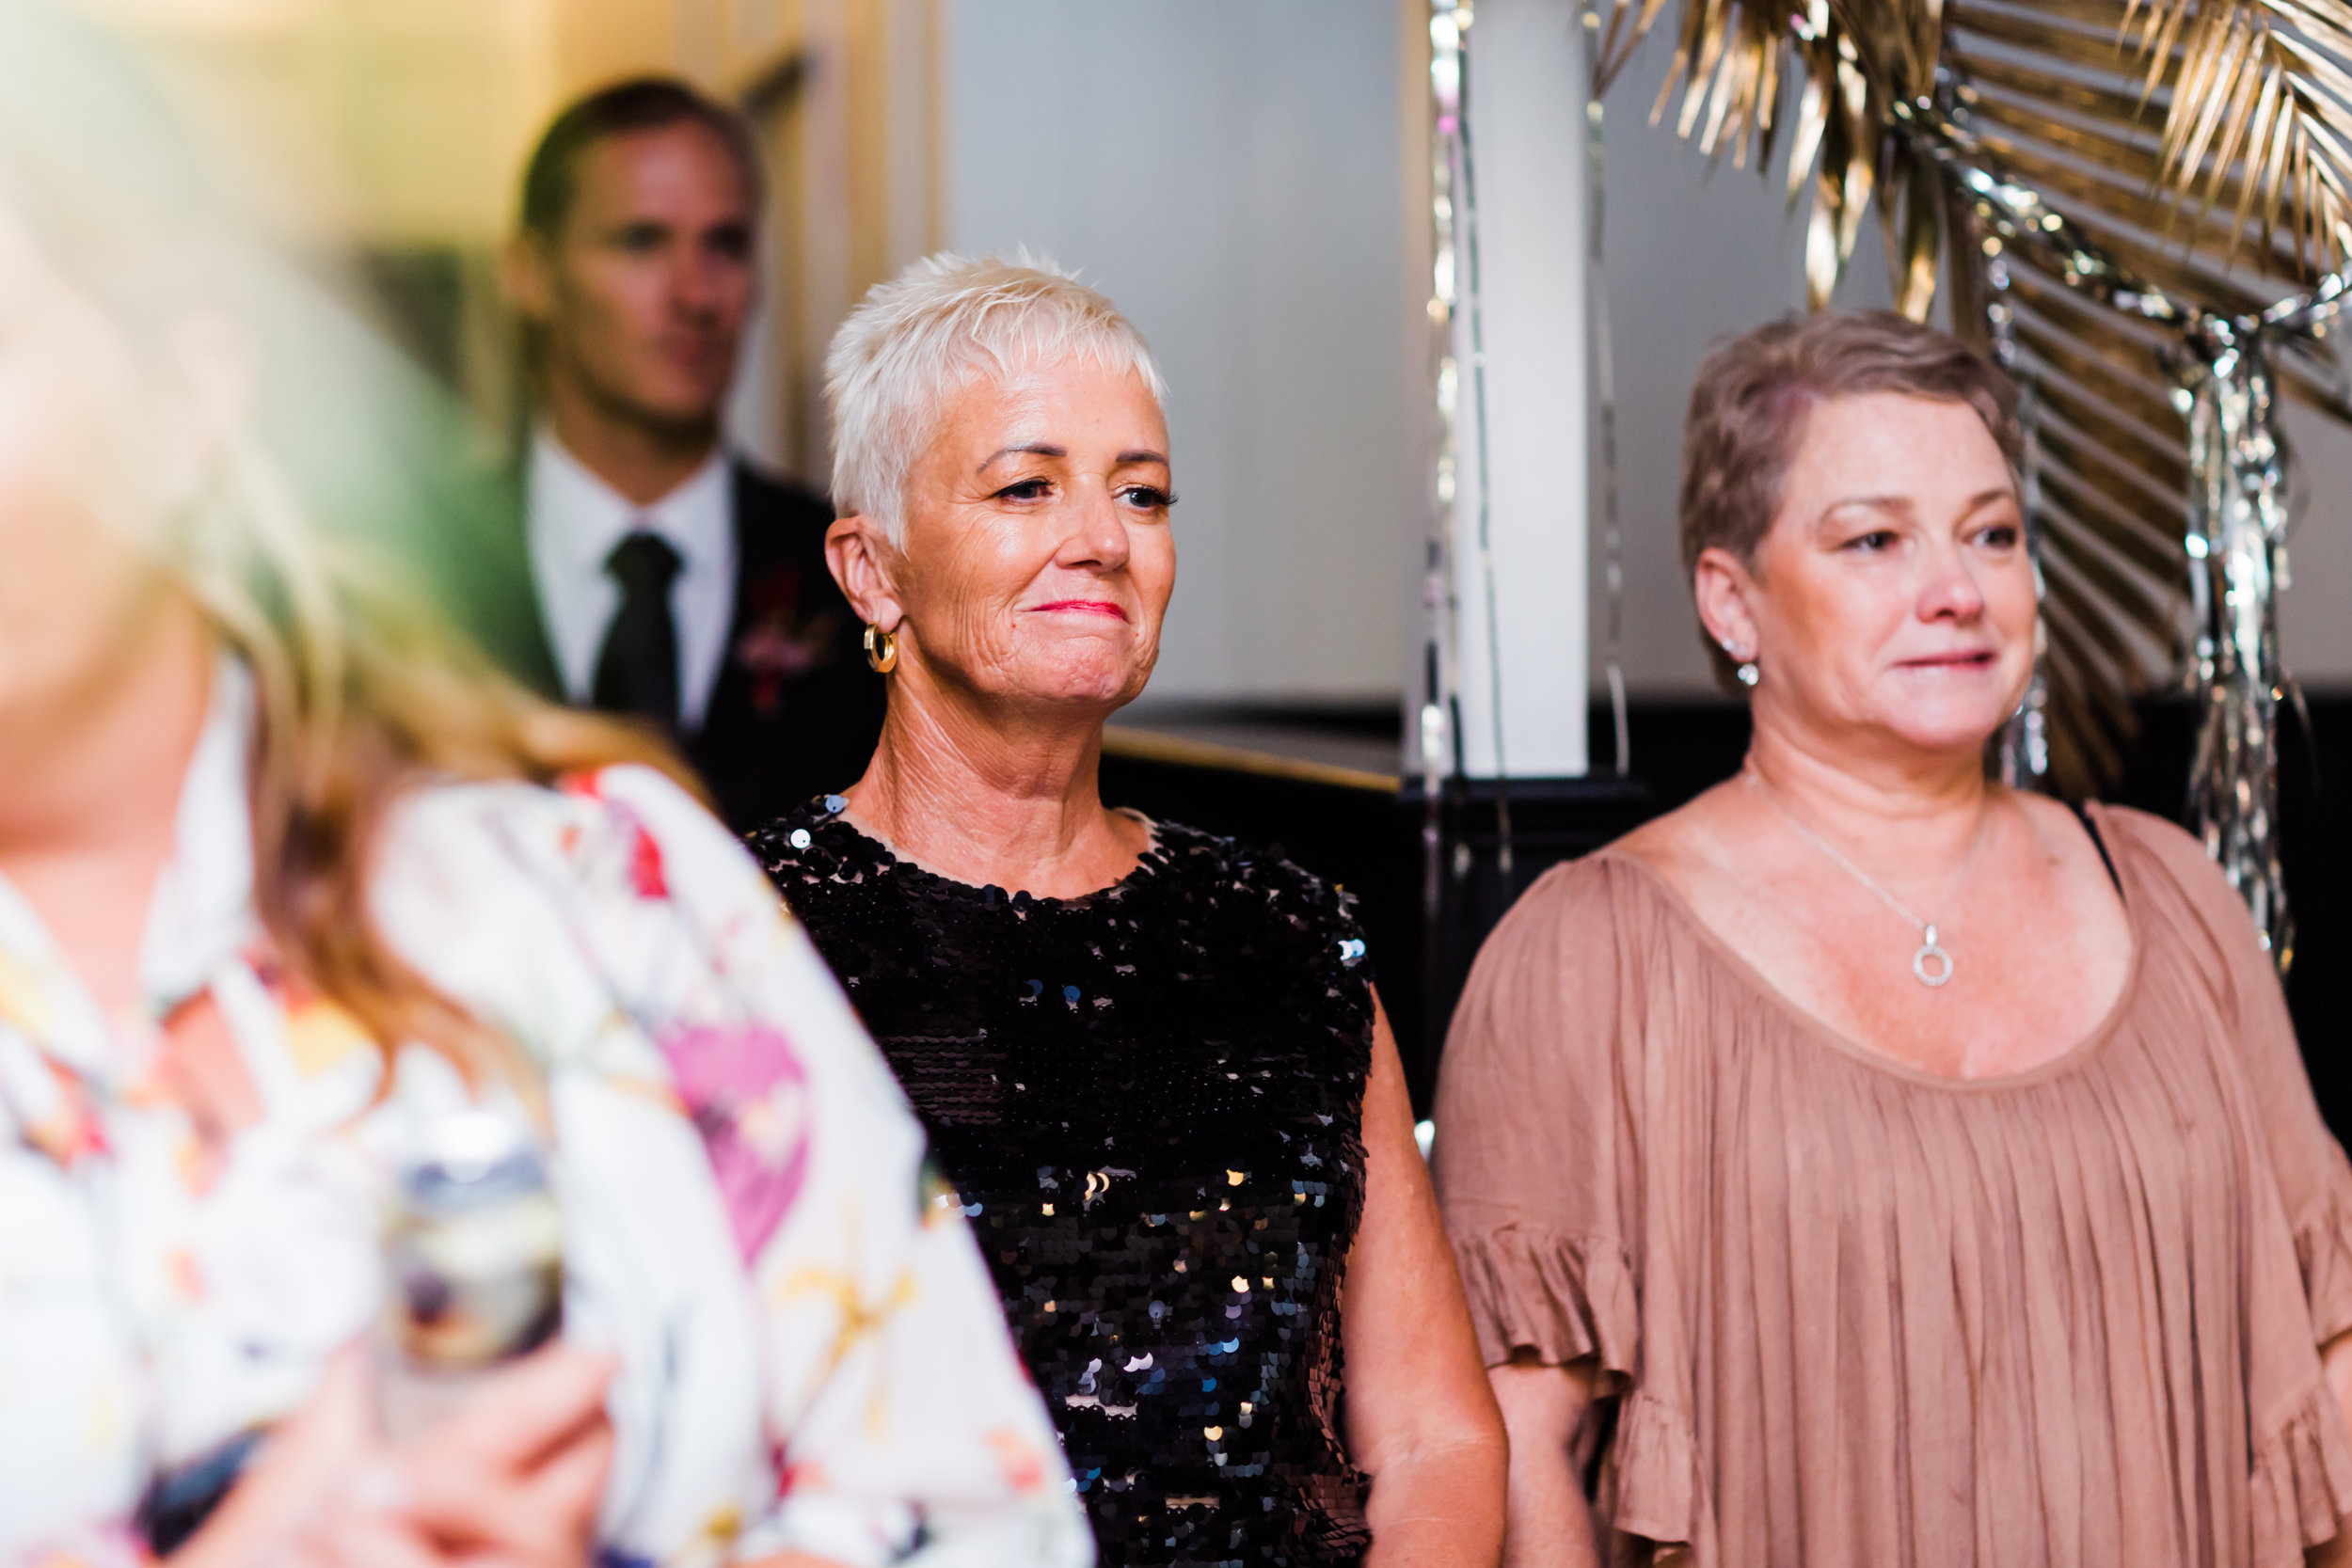 newcastle-wedding-nerida-michael-94.jpg